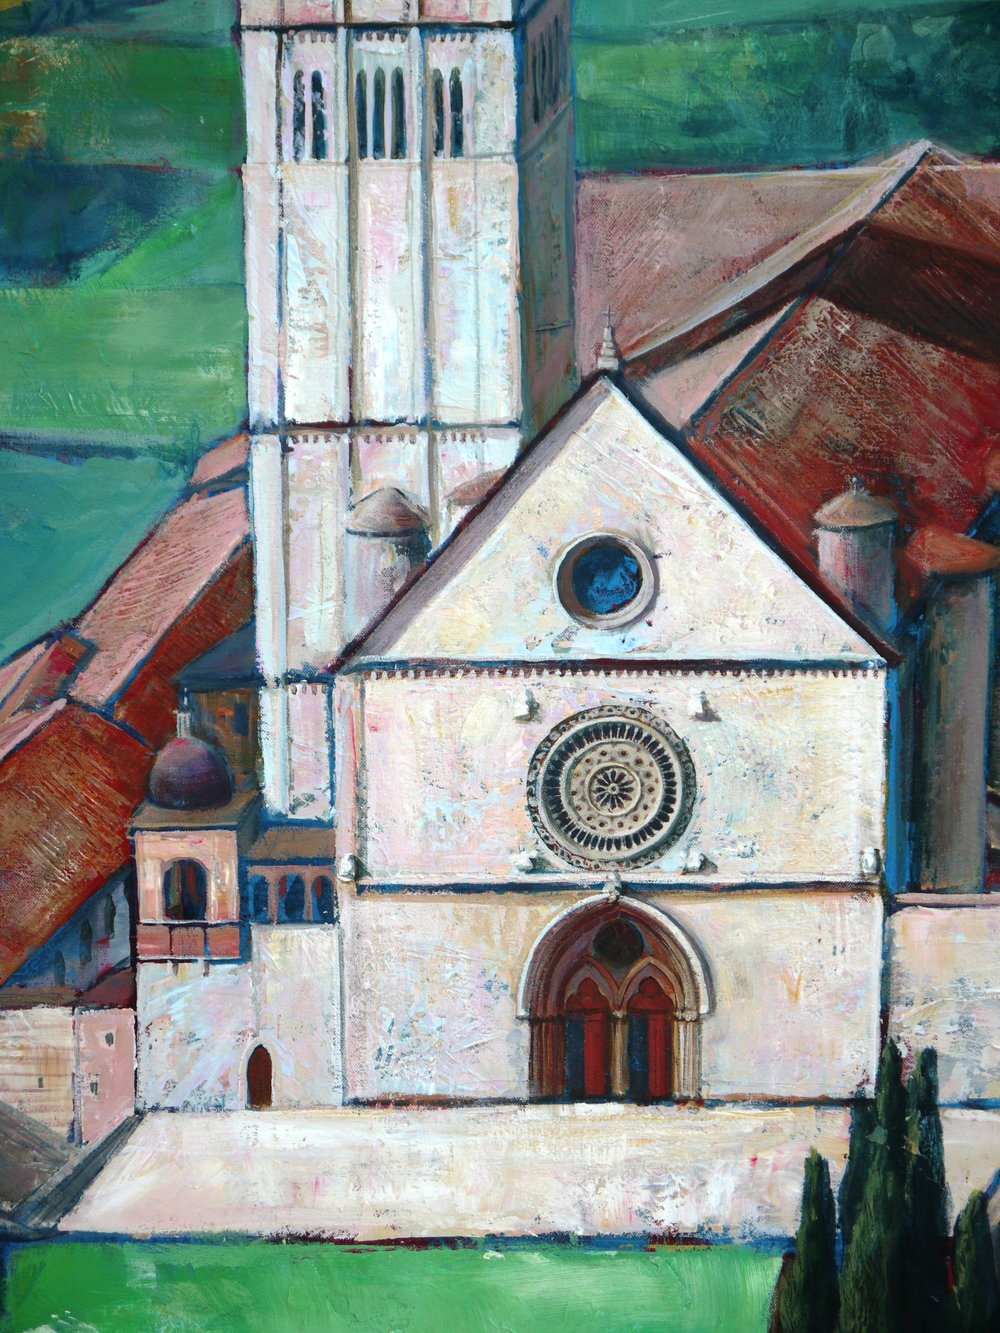 Basilica of St. Francis (detail)